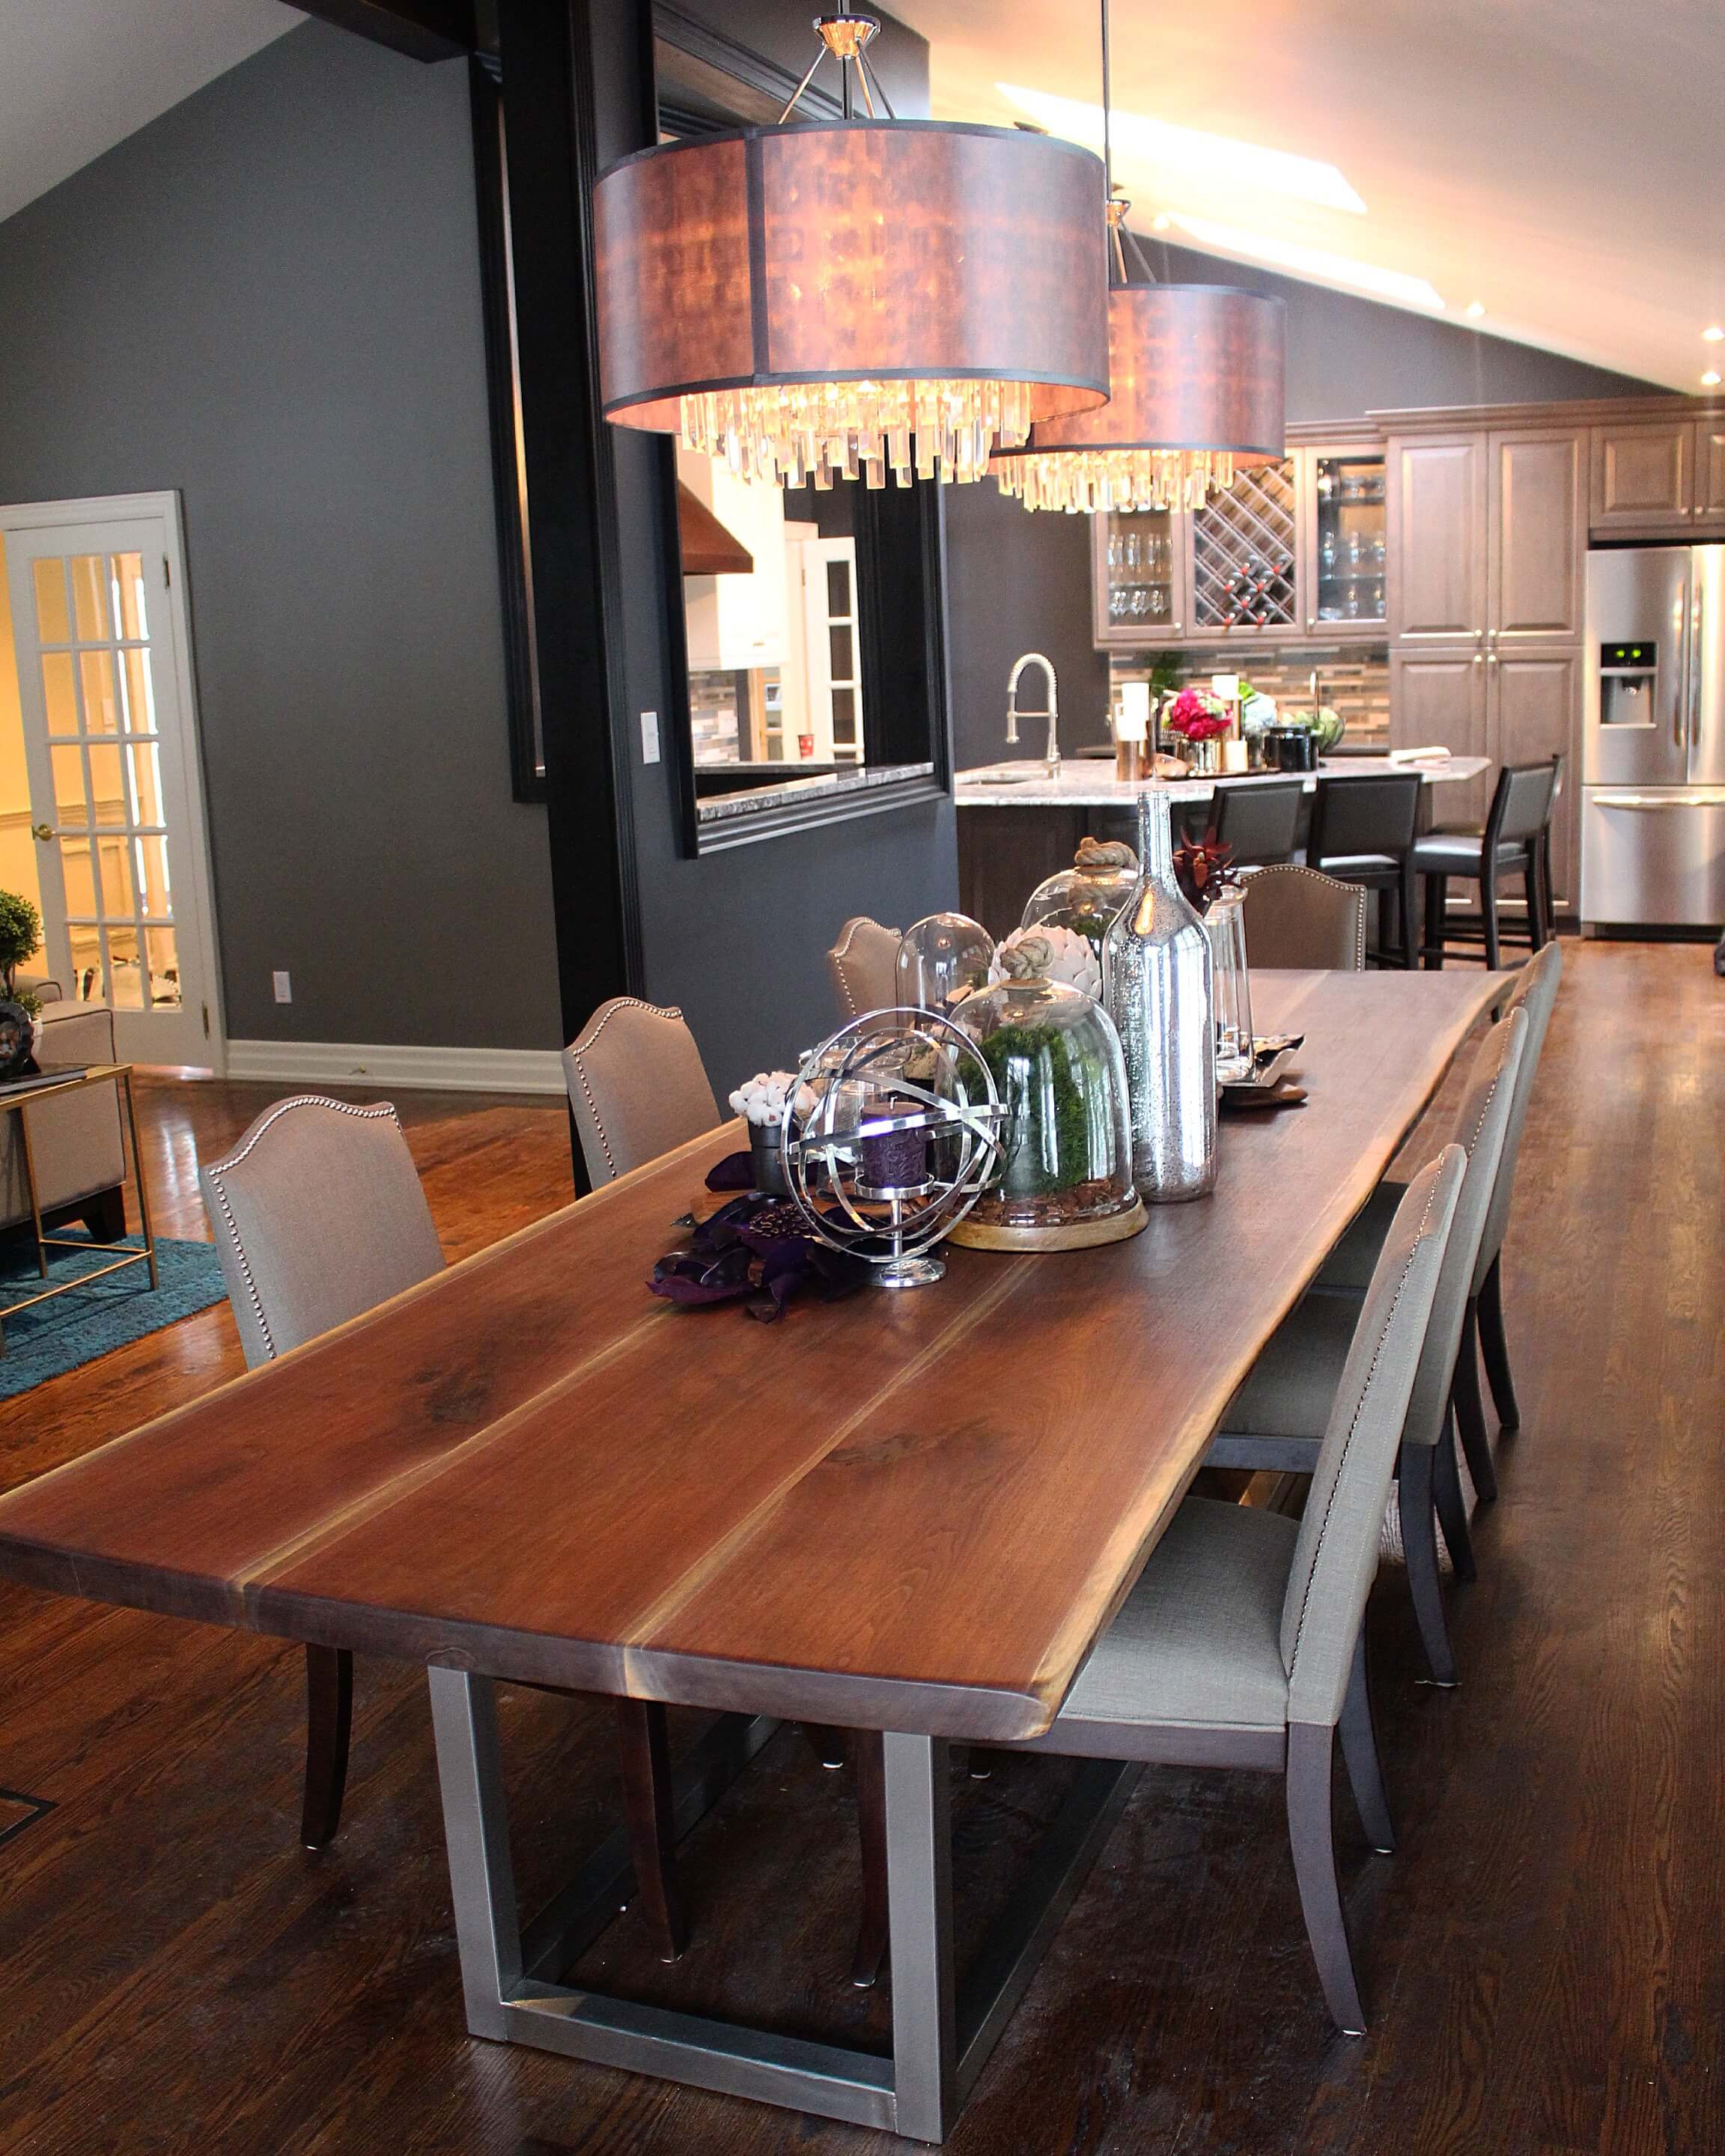 Walnut table on the Property Brothers